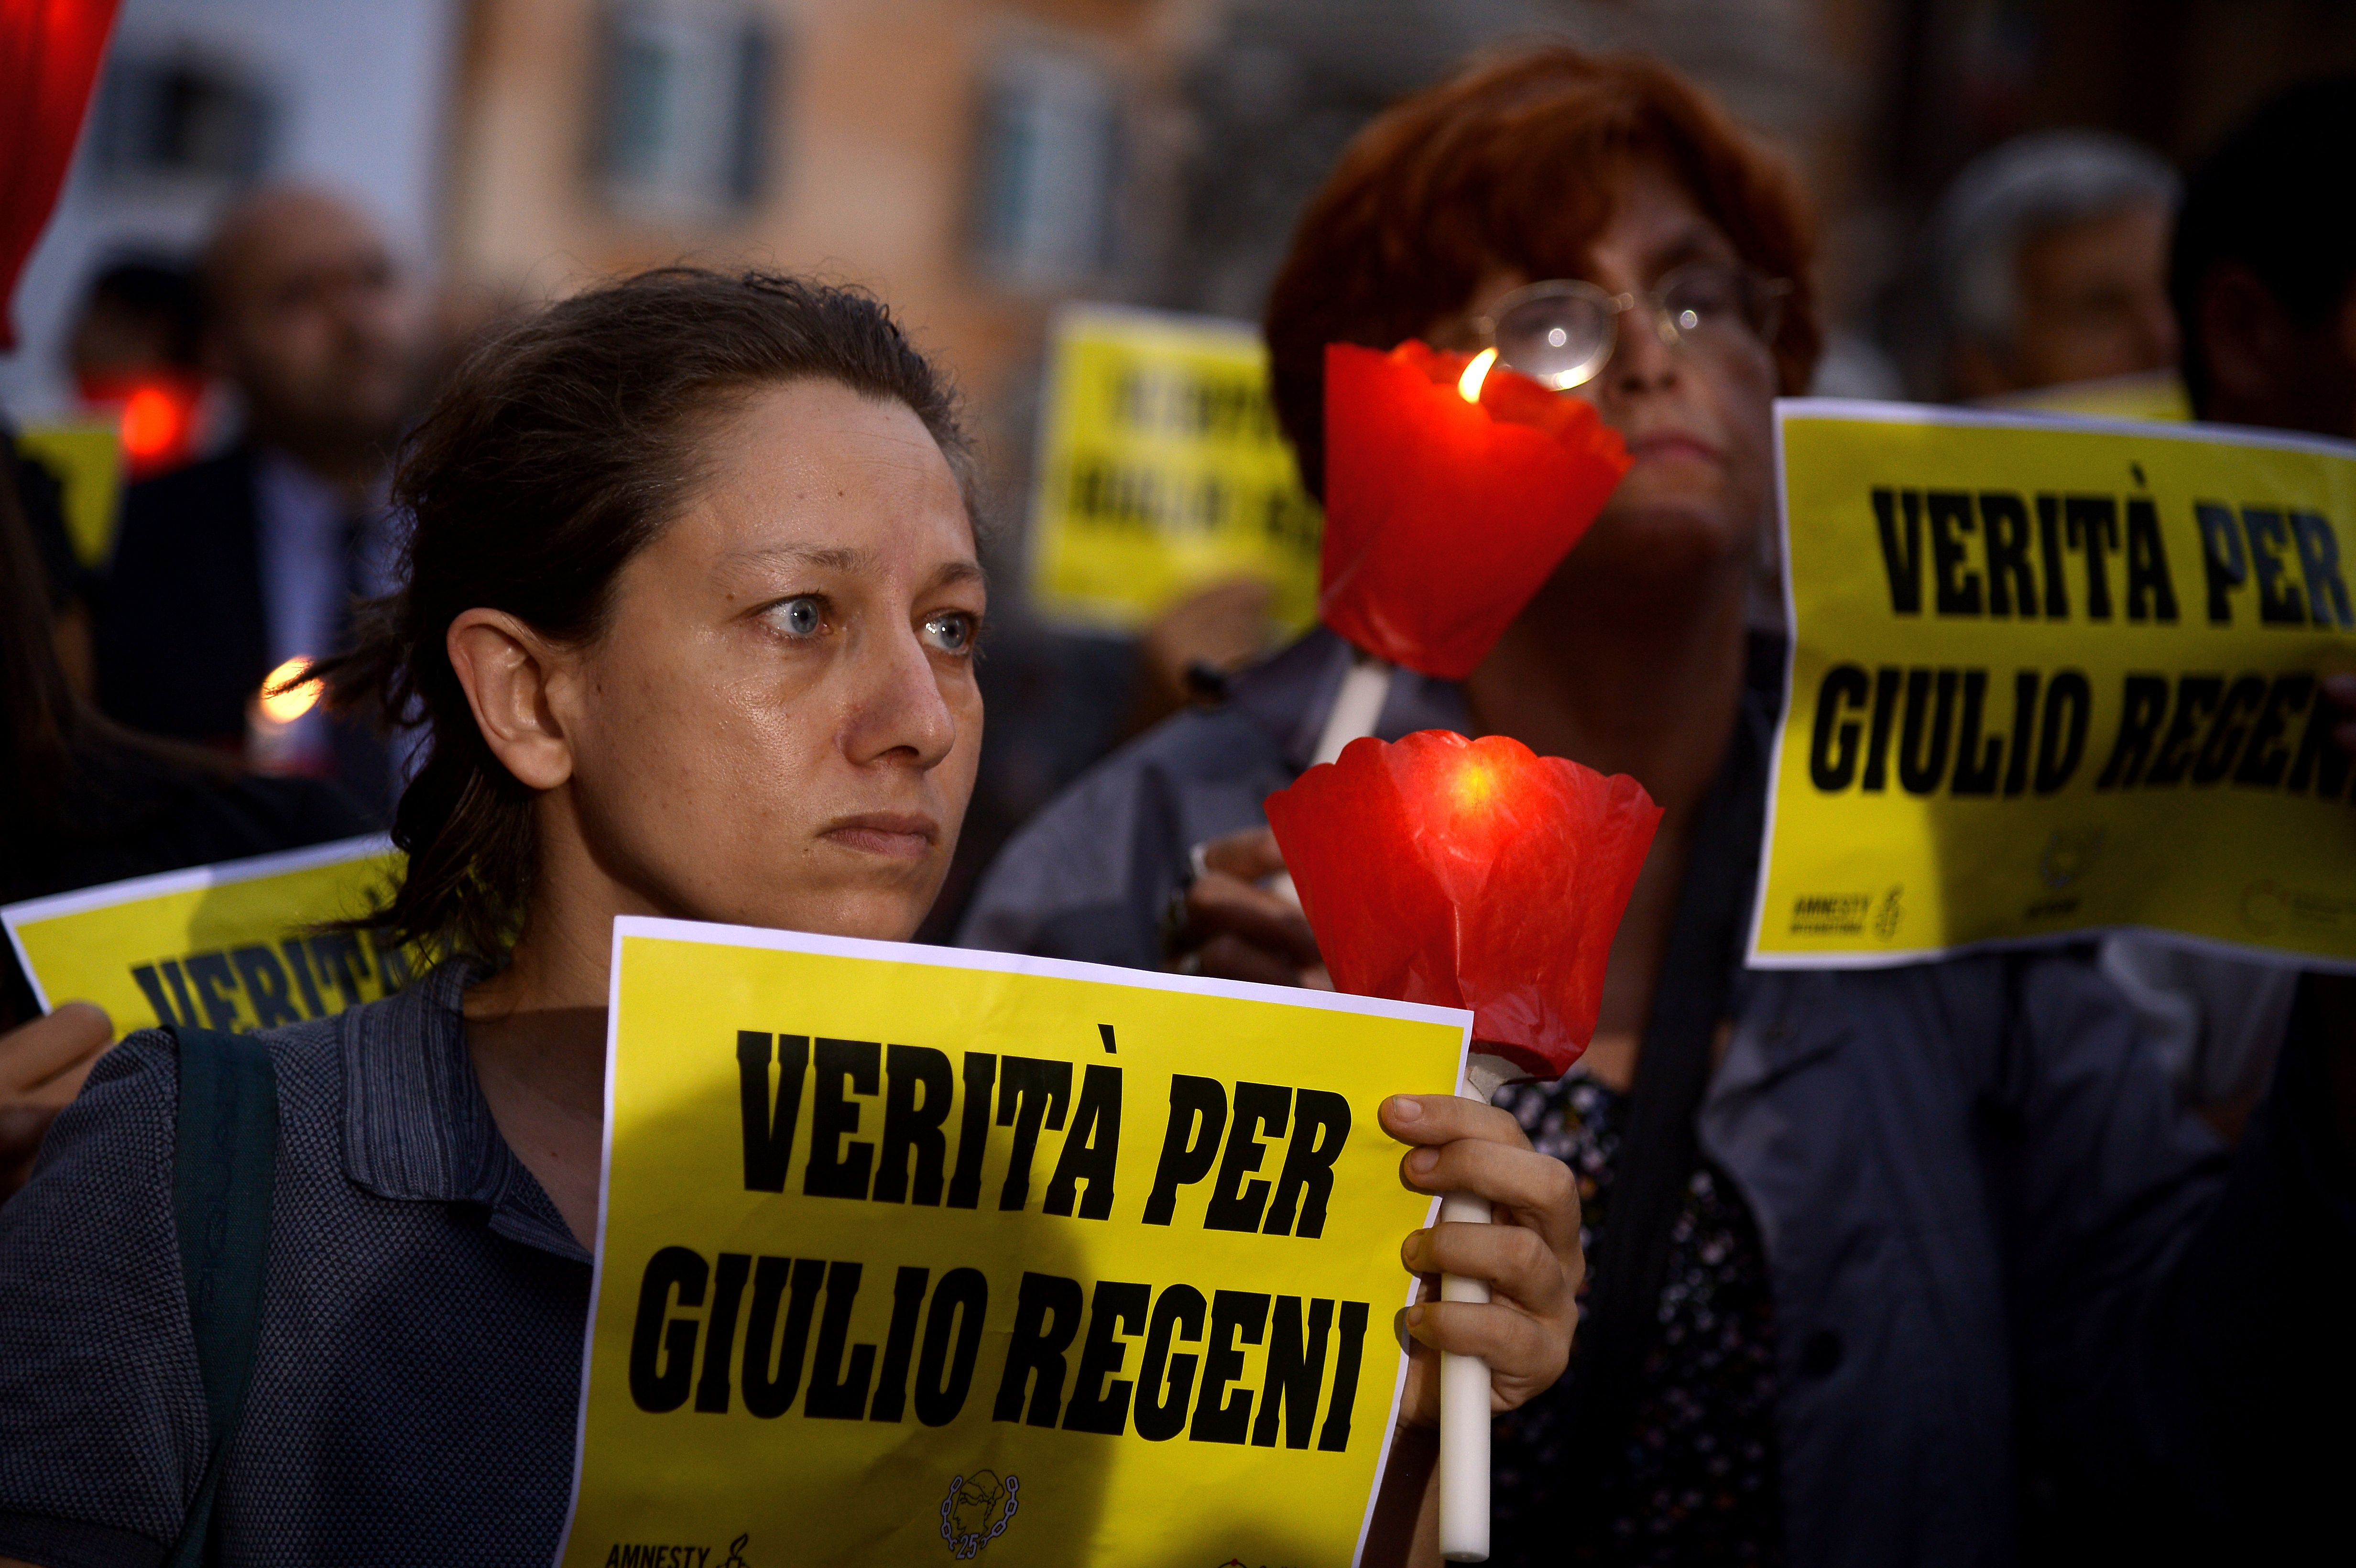 Amnesty International activists perform a candle light demonstration in Rome's Pantheon square on July 25, 2016 to remember late Italian student Giulio Regeni. (FILIPPO MONTEFORTE/AFP/Getty Images)